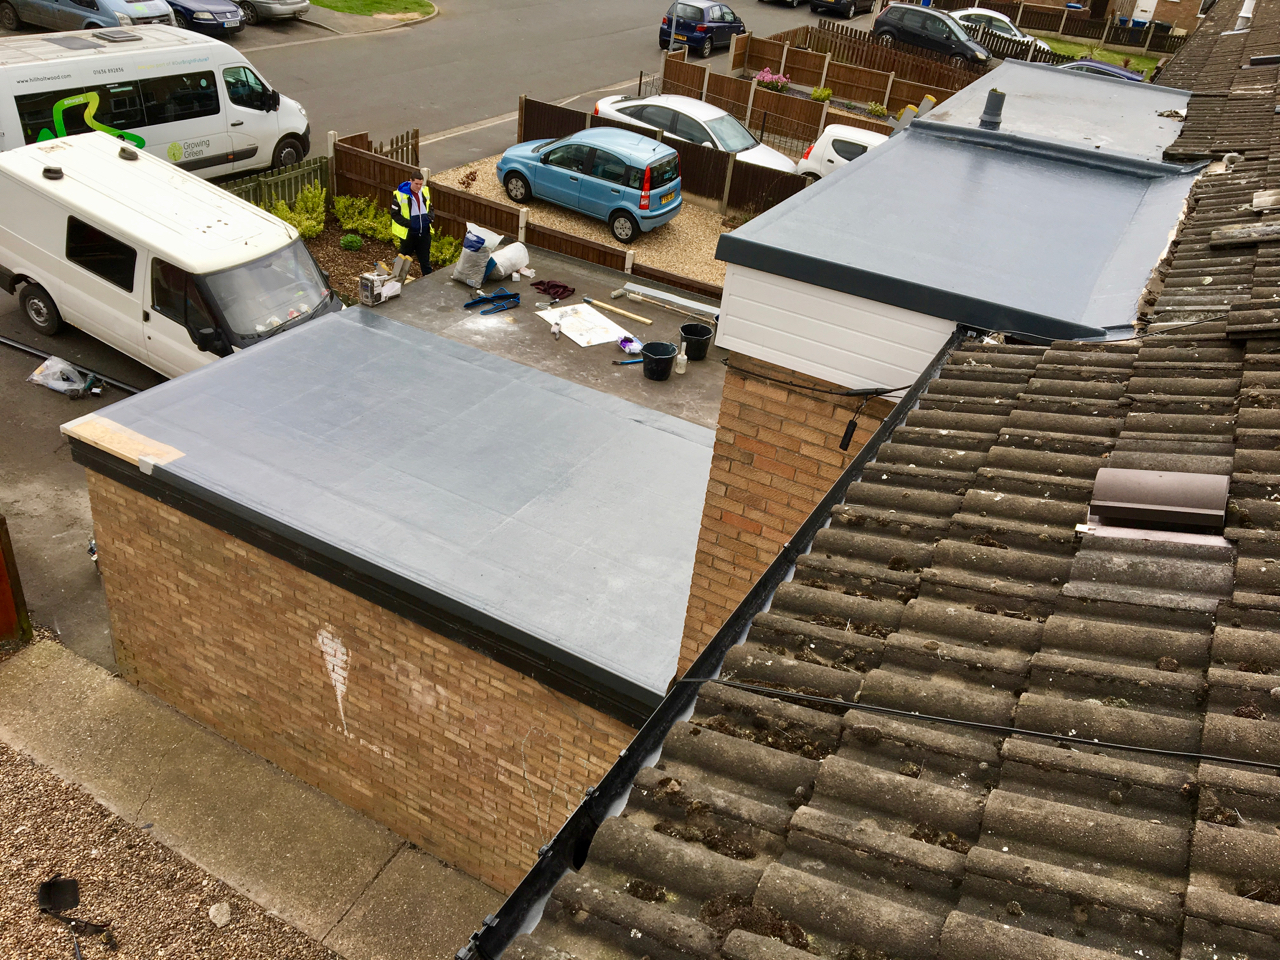 https://www.bluedotroofing.uk/wp-content/uploads/2018/01/grp-flat-roofing-1-1.jpg